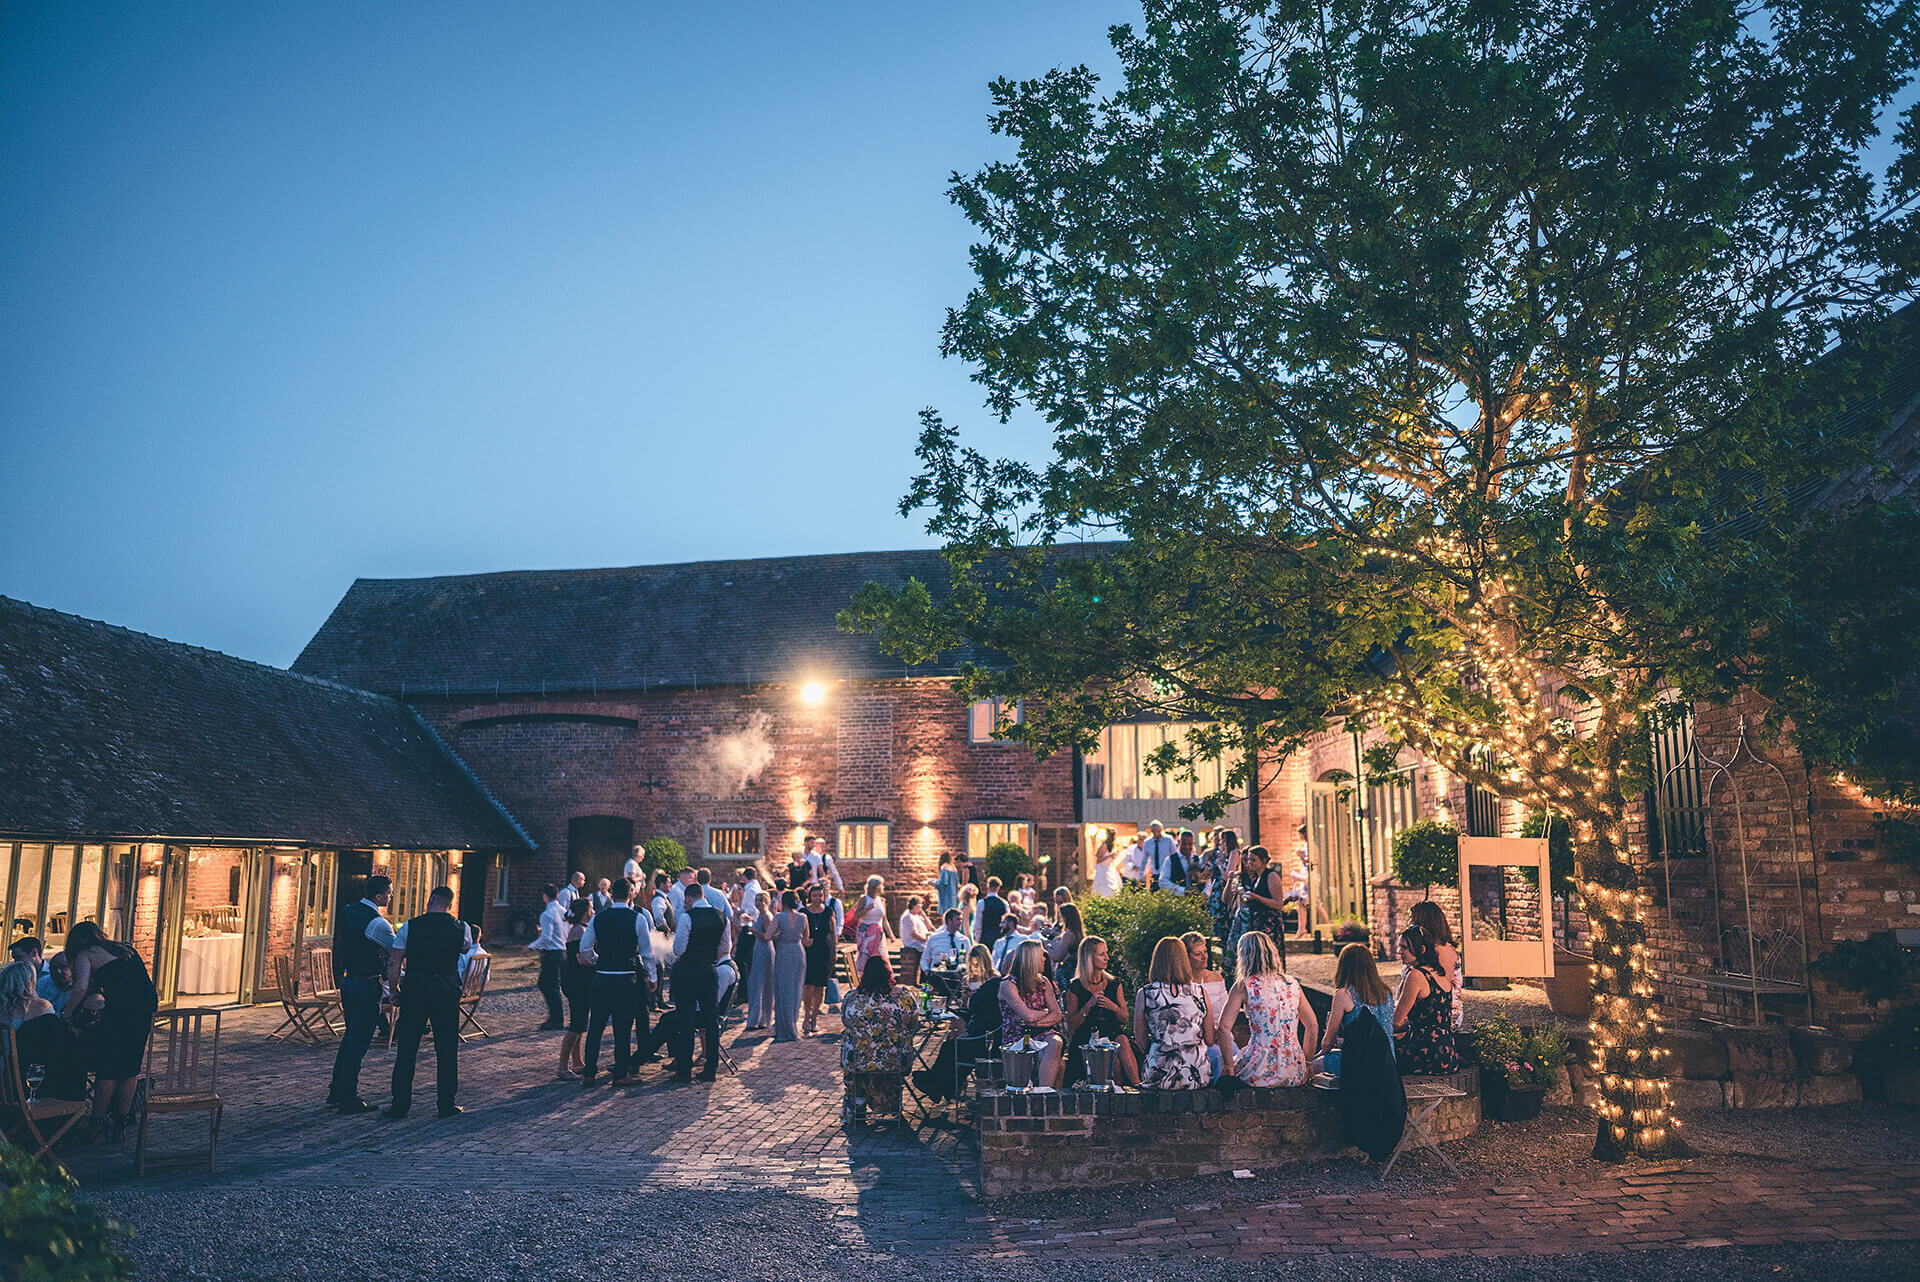 curradine barns guests evening courtyard